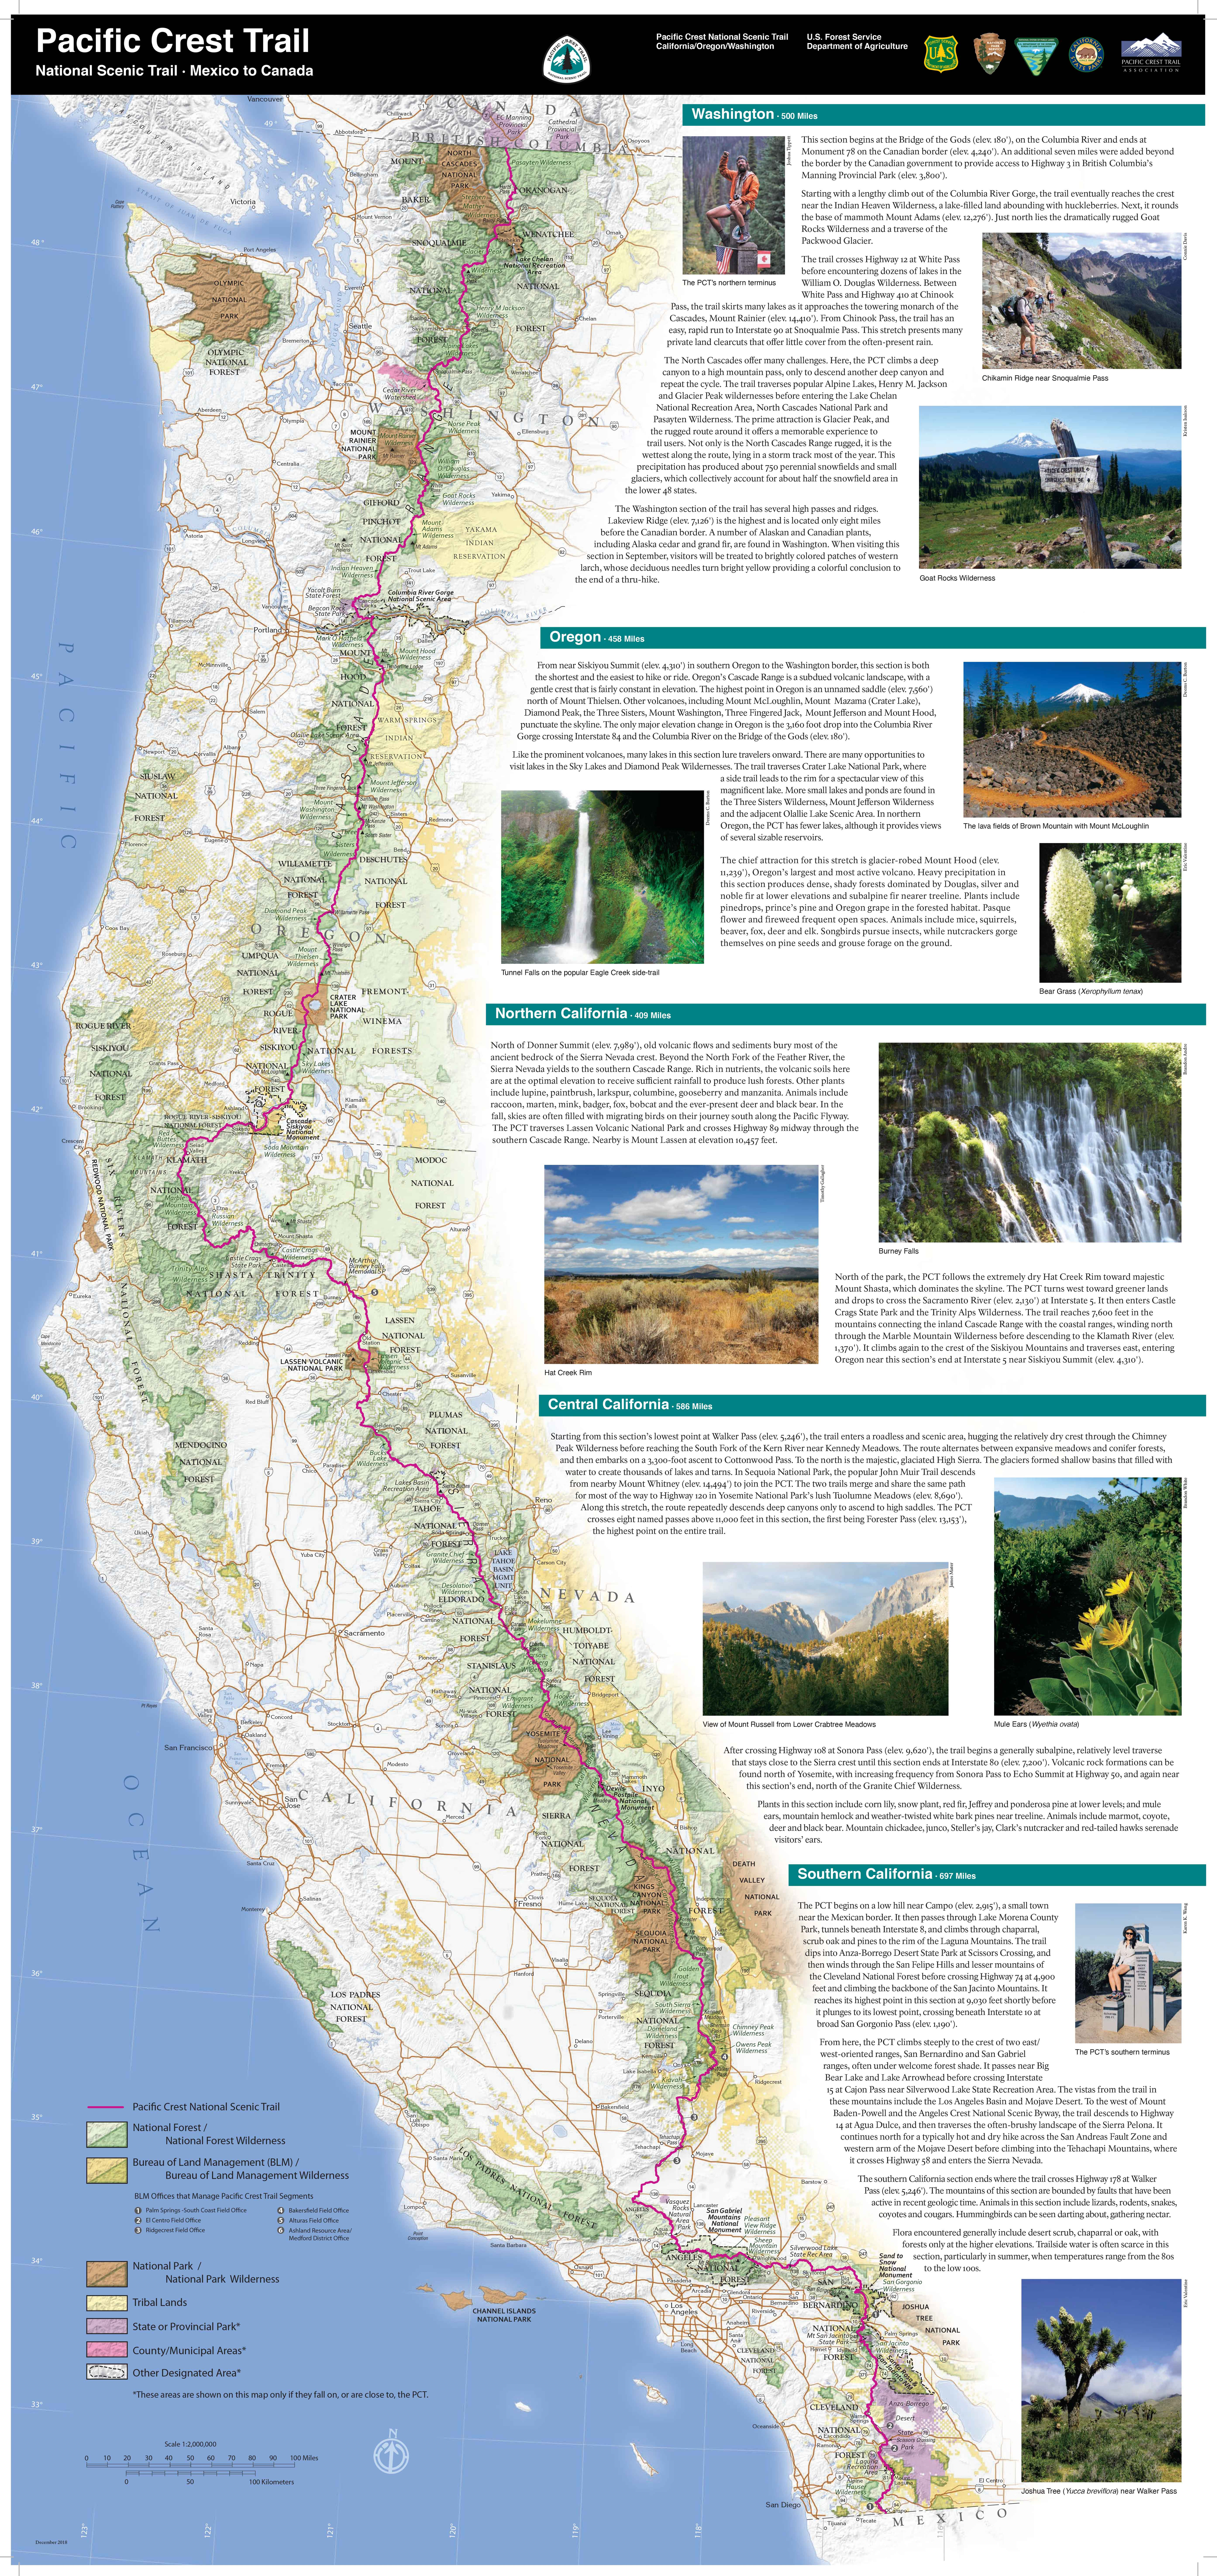 Map of the PCT from the USDA Forest Service brochure includes photos and points of interest along the trail.